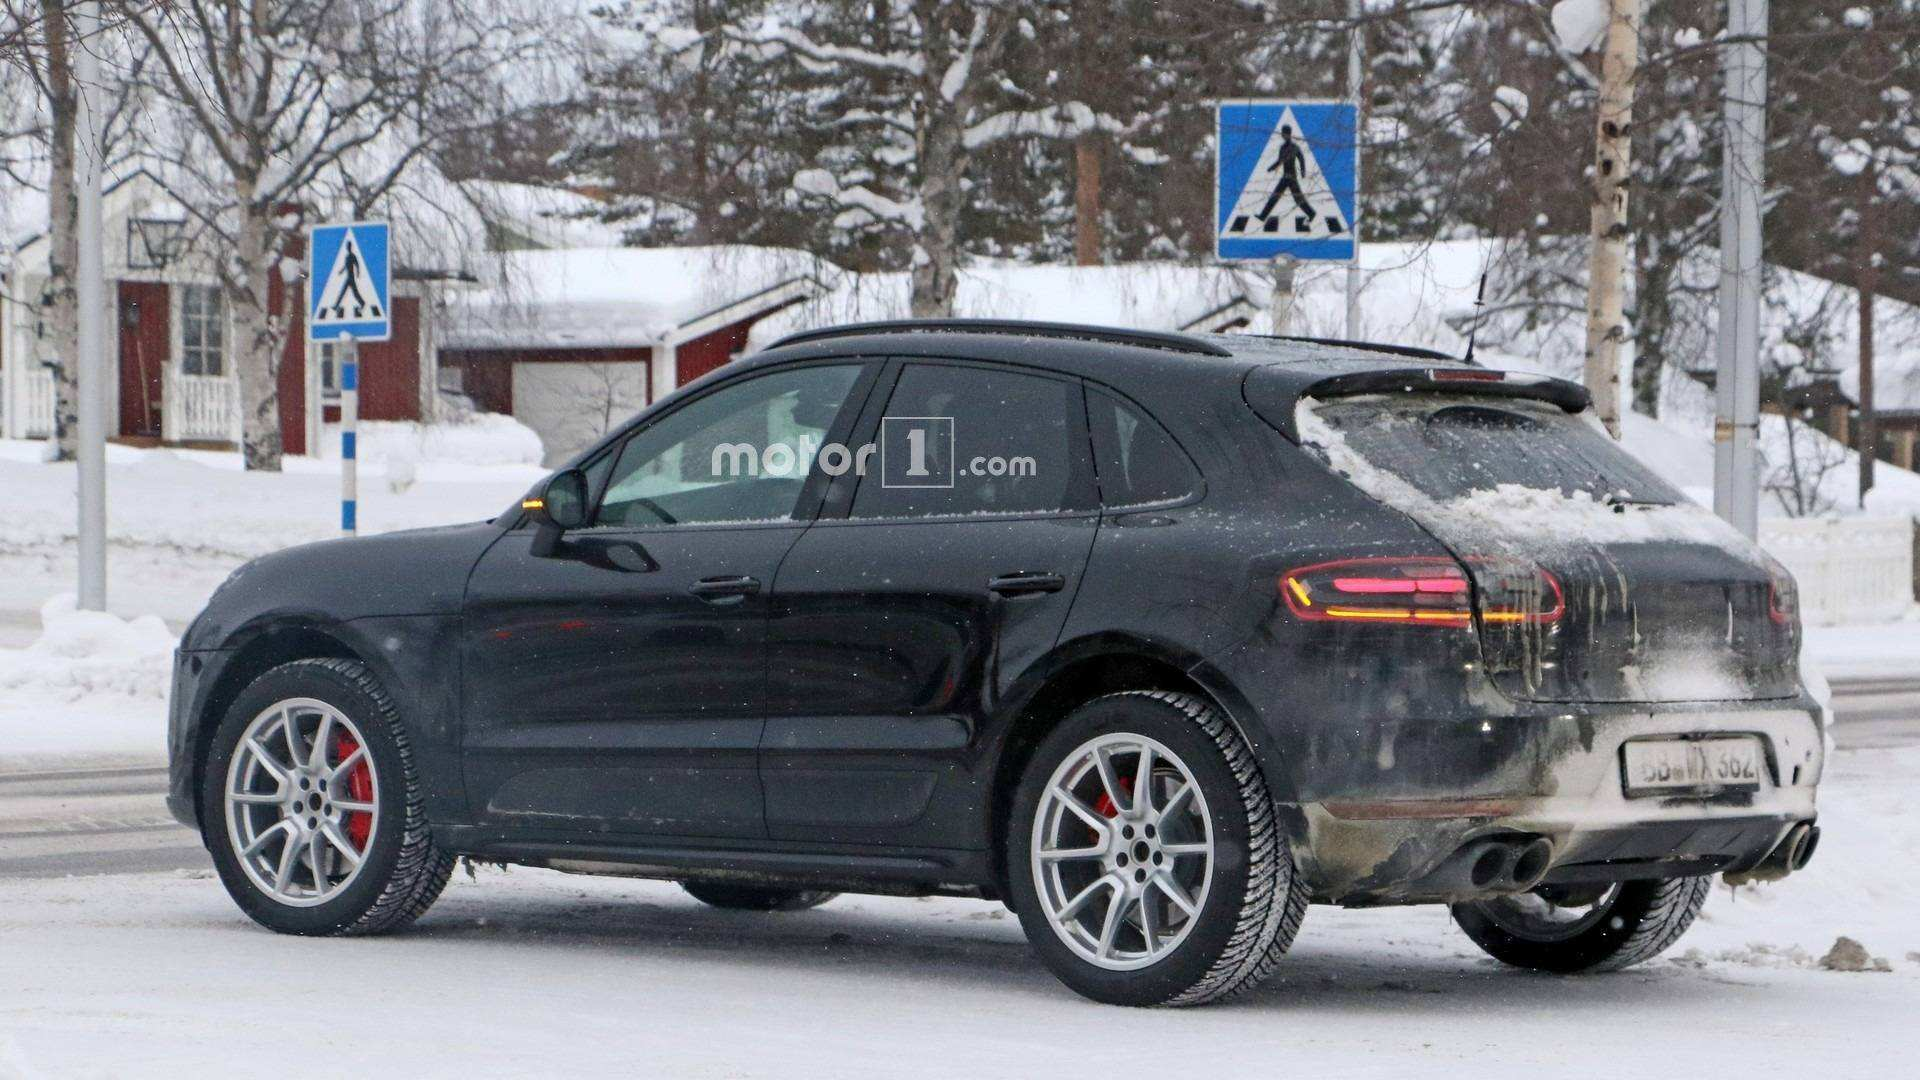 82 New 2019 Porsche Macan Review by 2019 Porsche Macan